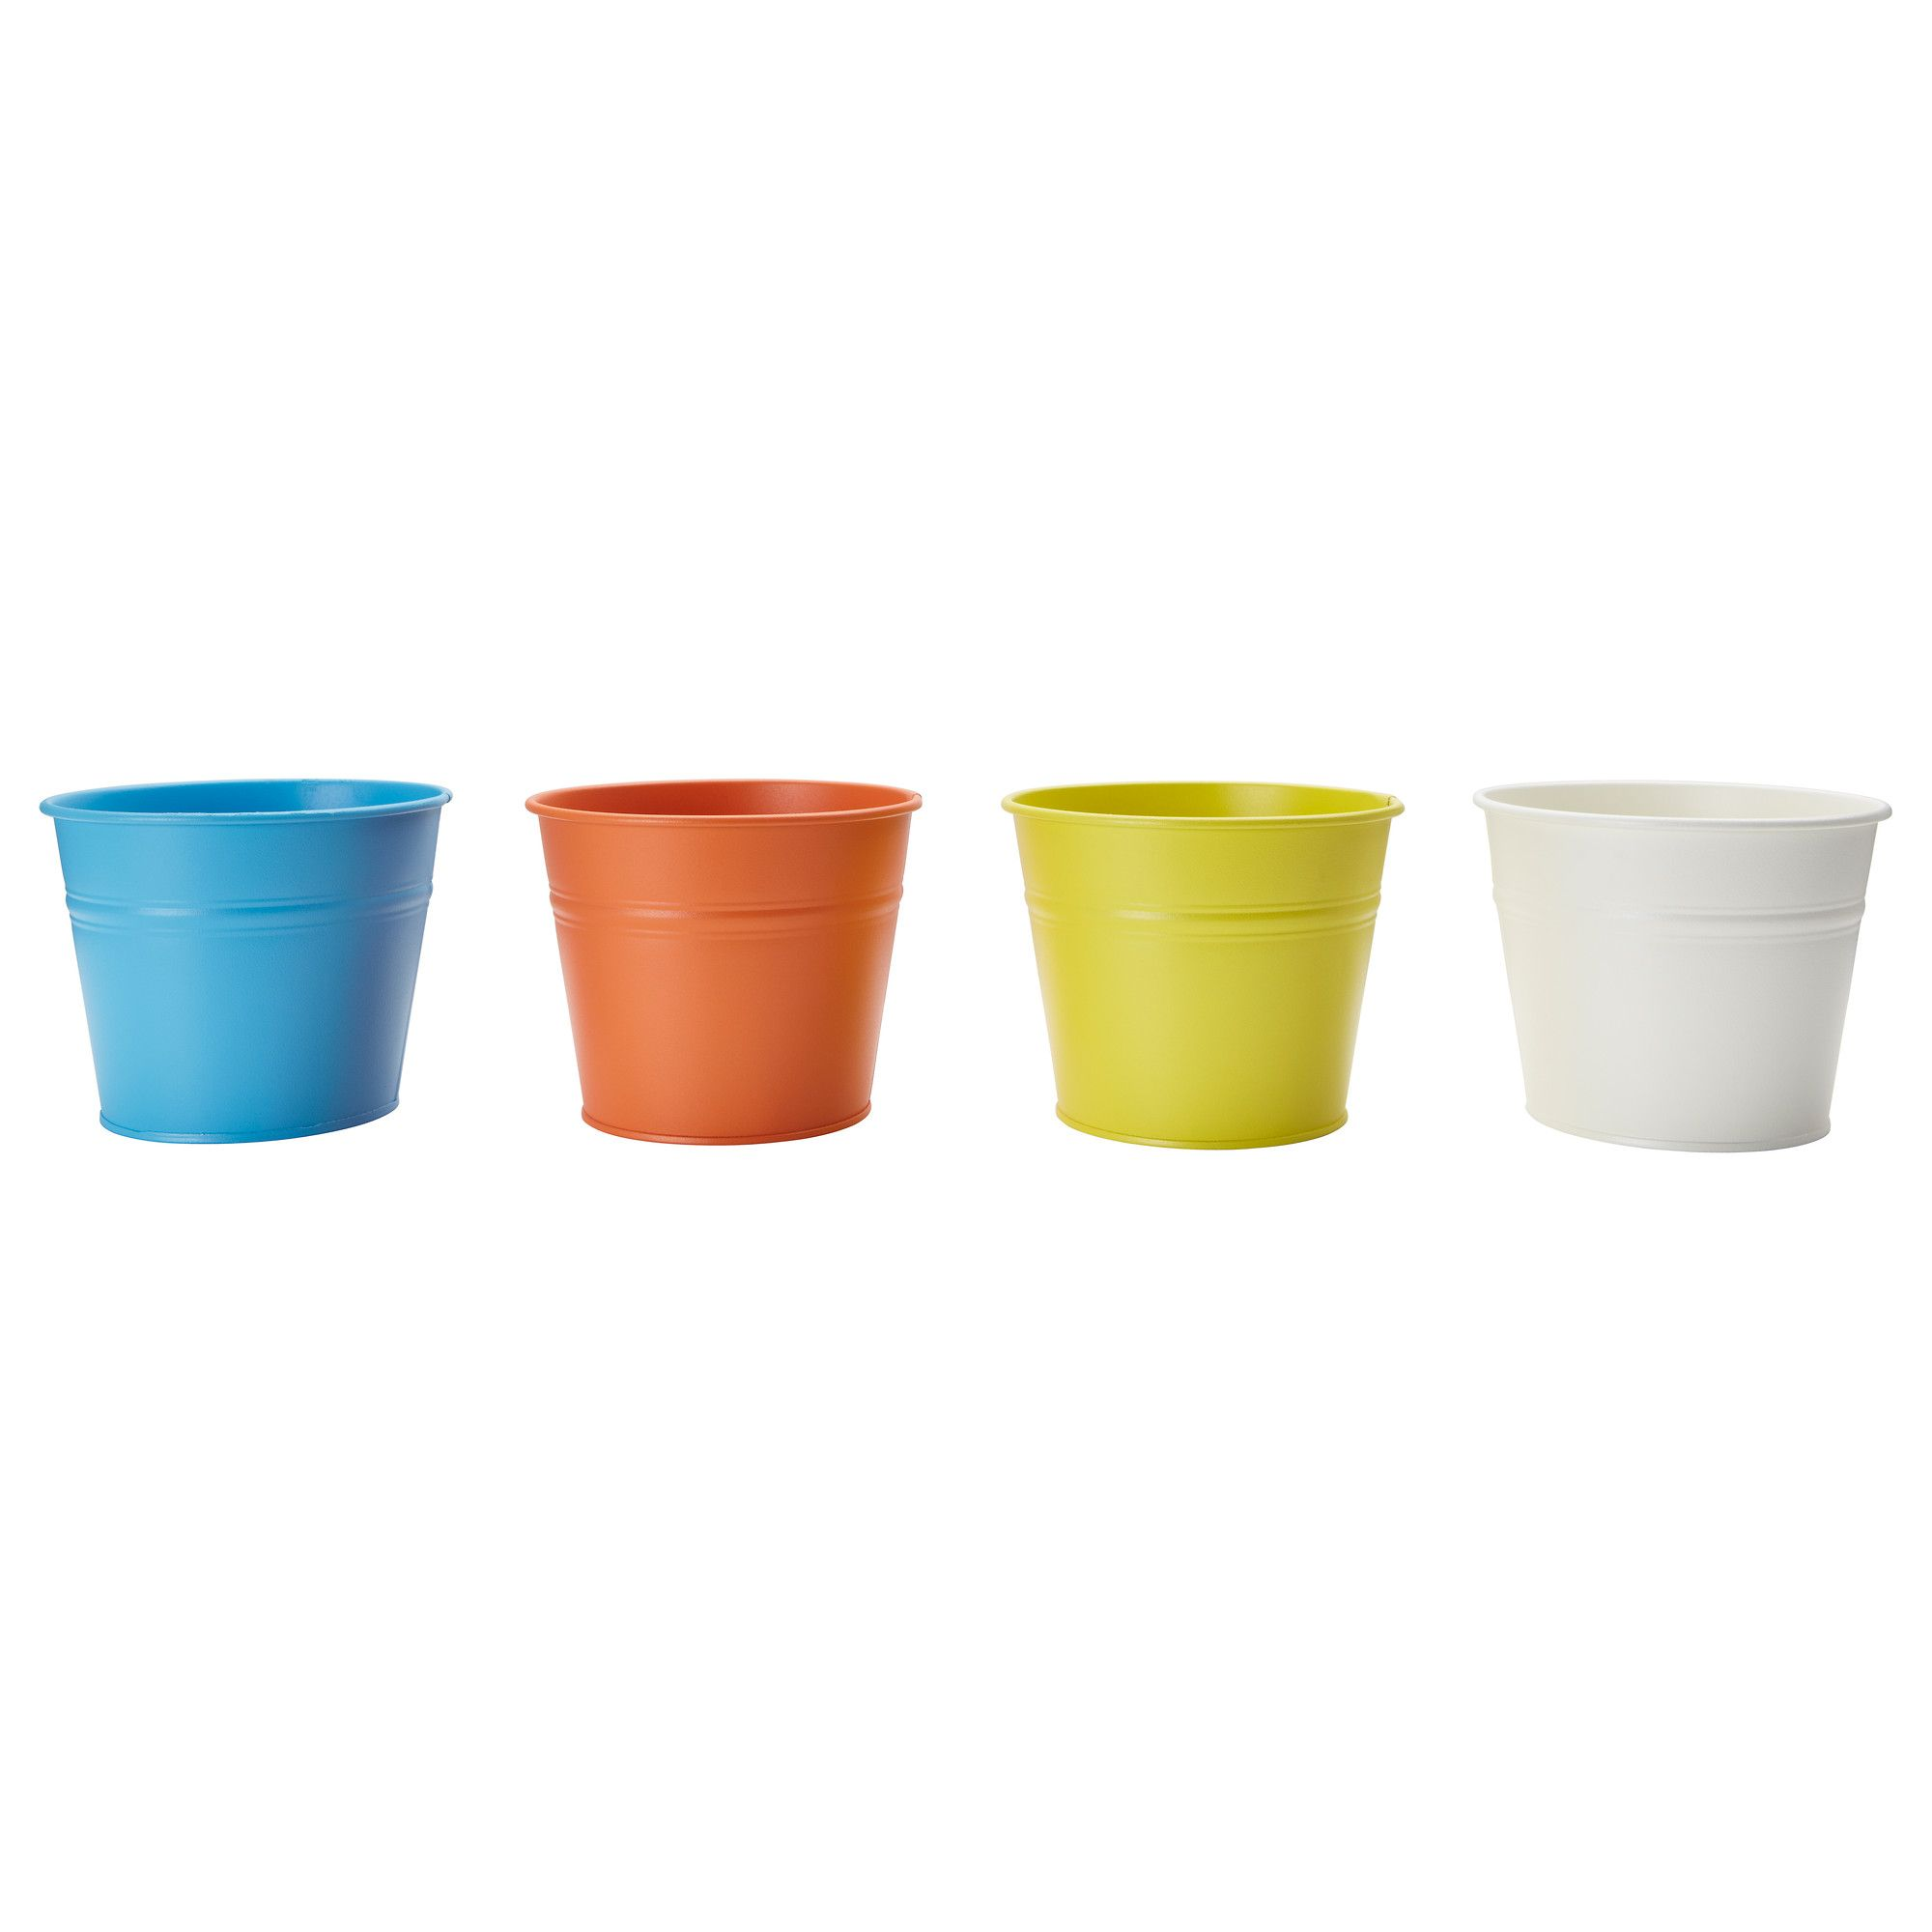 Balcony Planter Ikea Socker Plant Pot Ikea For The Garden Pinterest